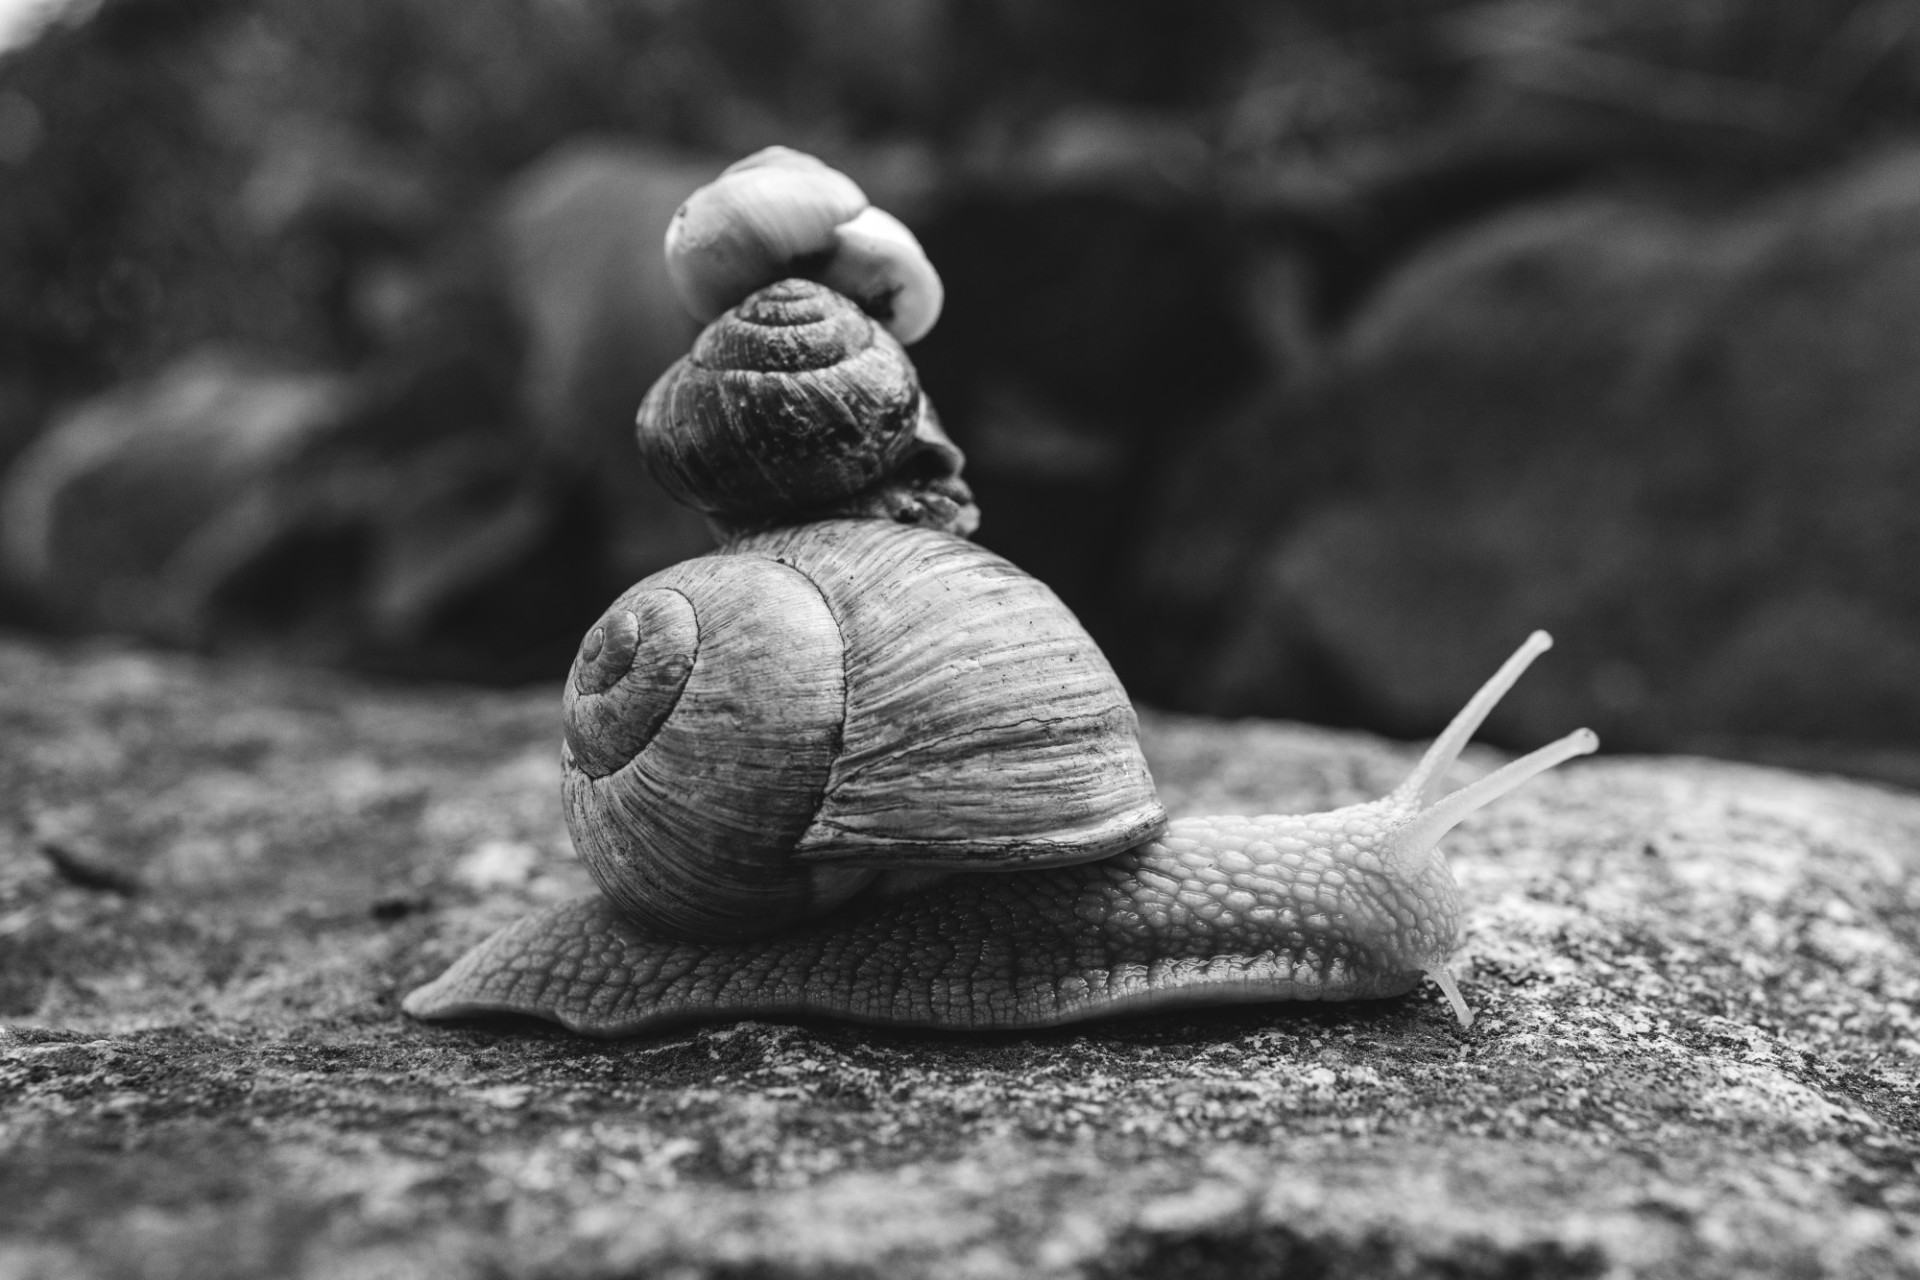 Three snails stacked on top of each other